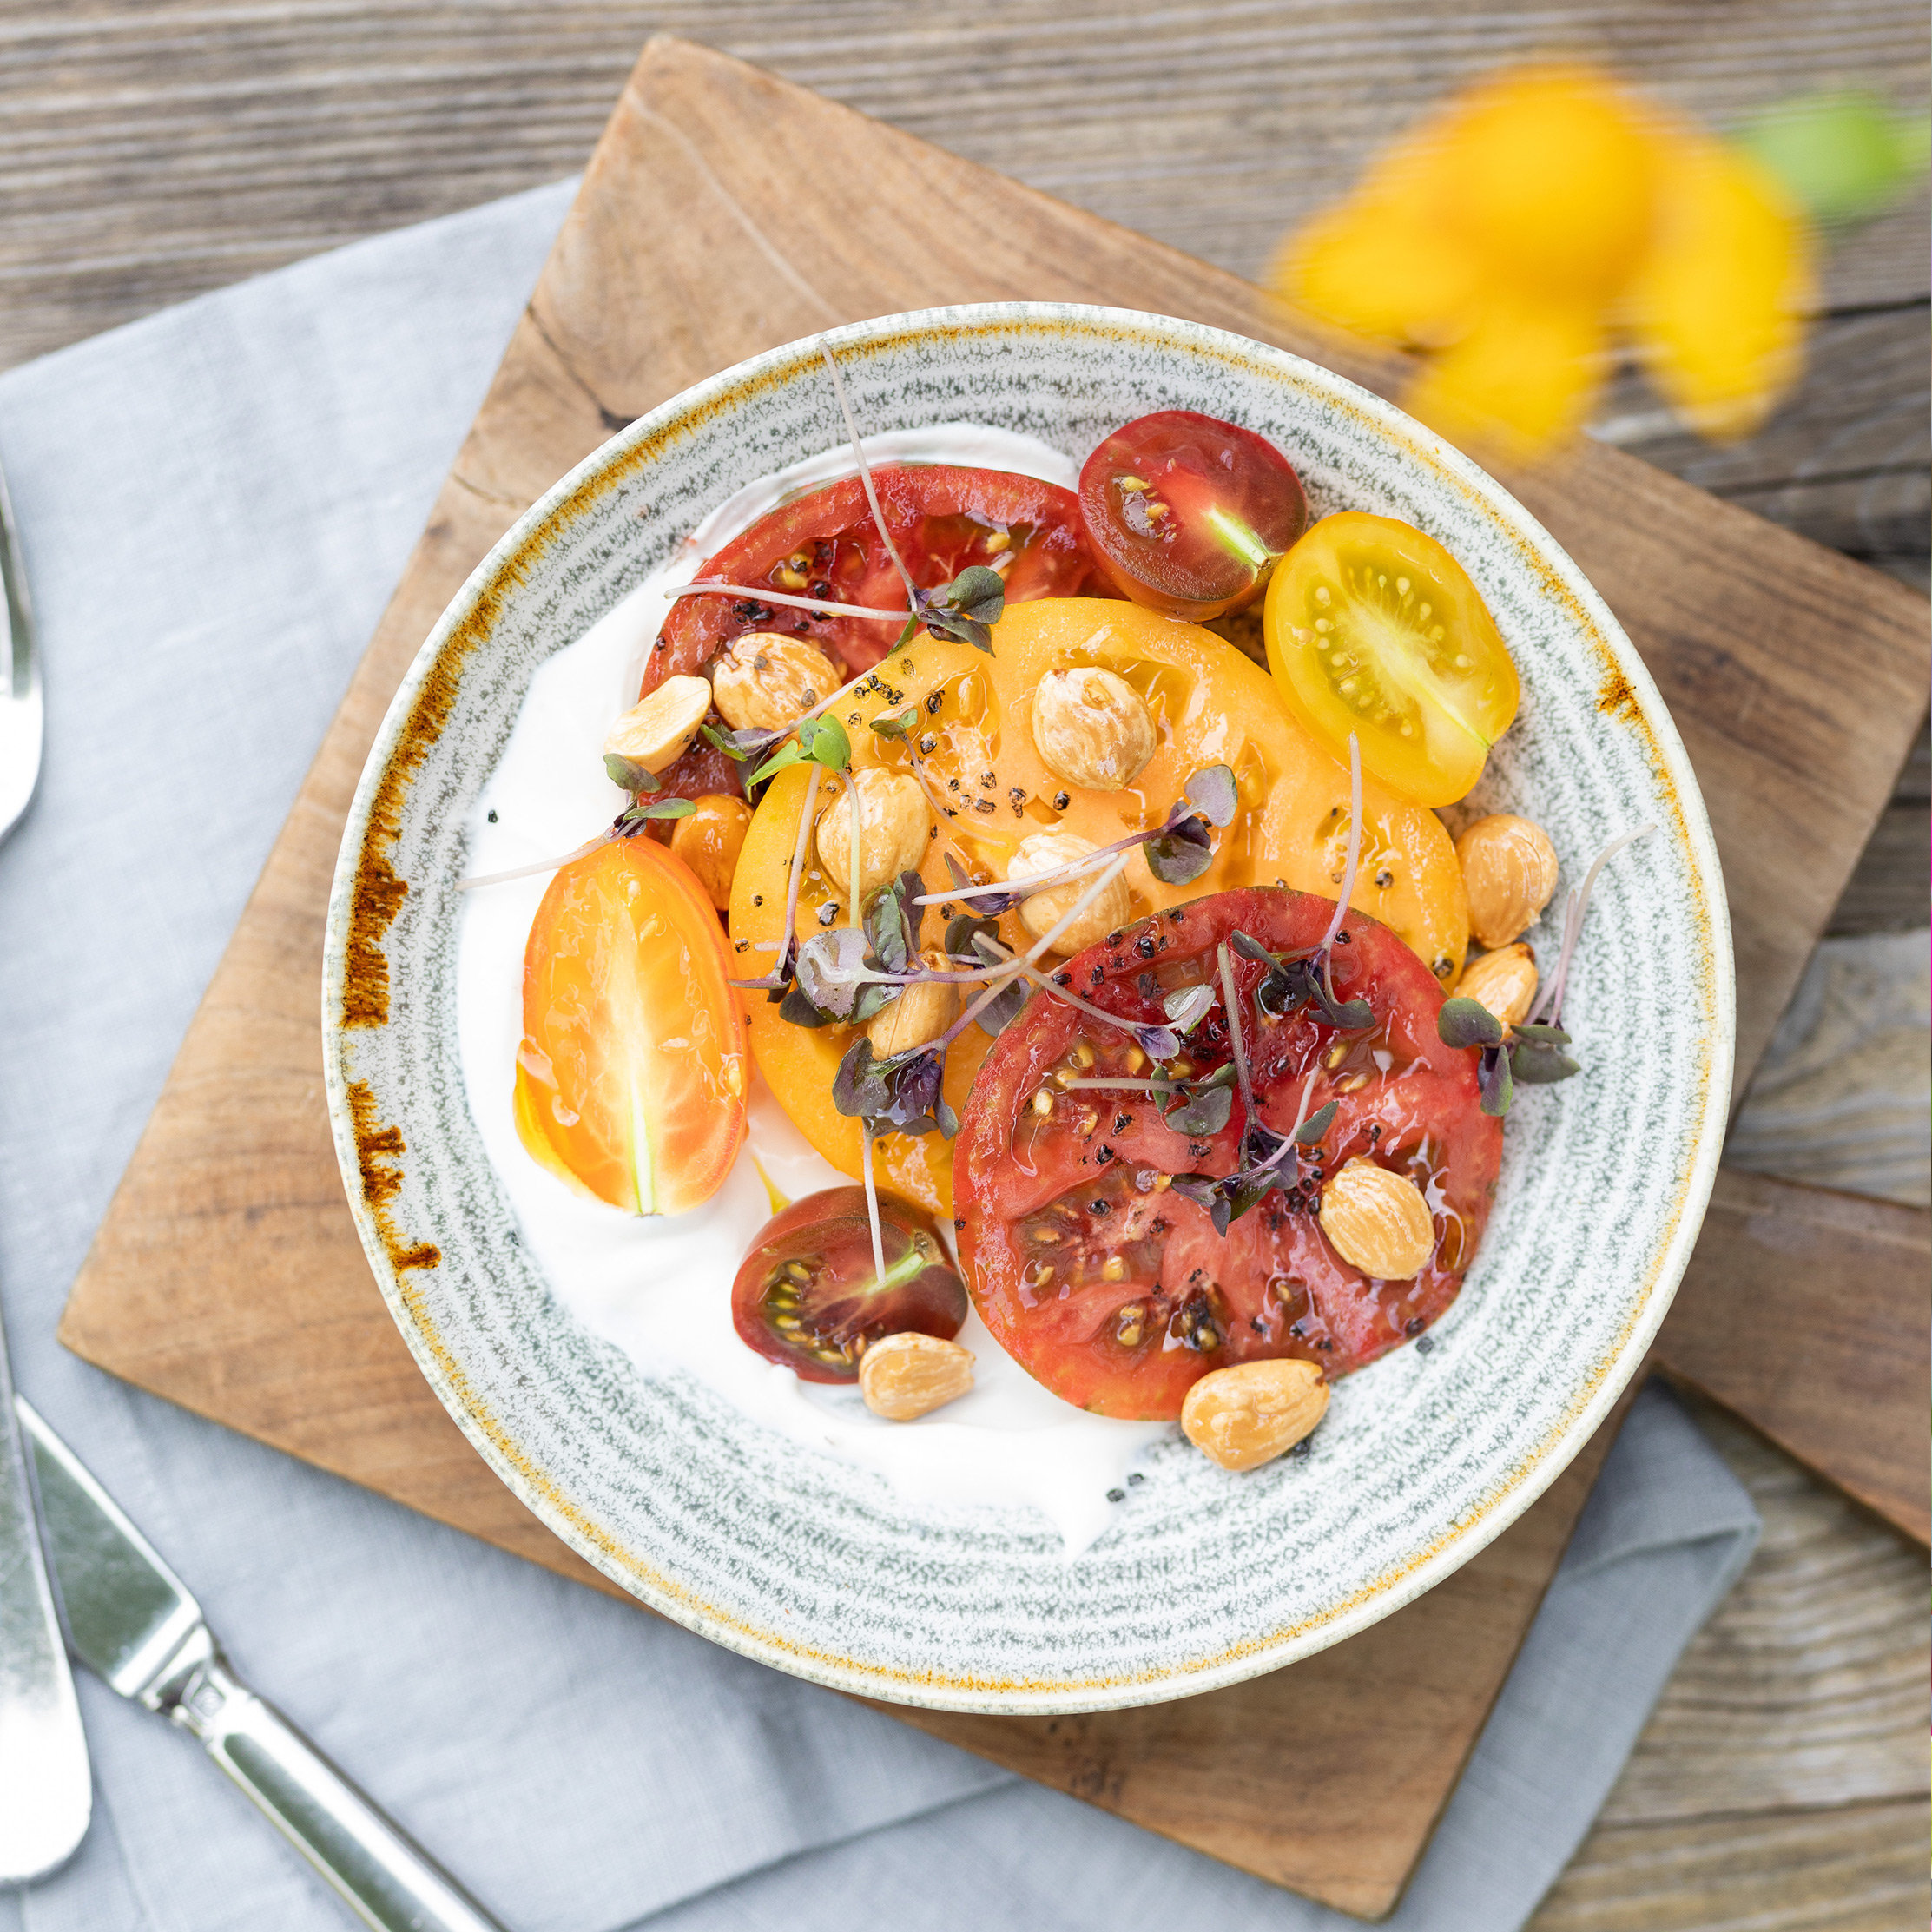 The Grower + Chef: Tomatoes with Jeff Taibe and Jess Bengtson